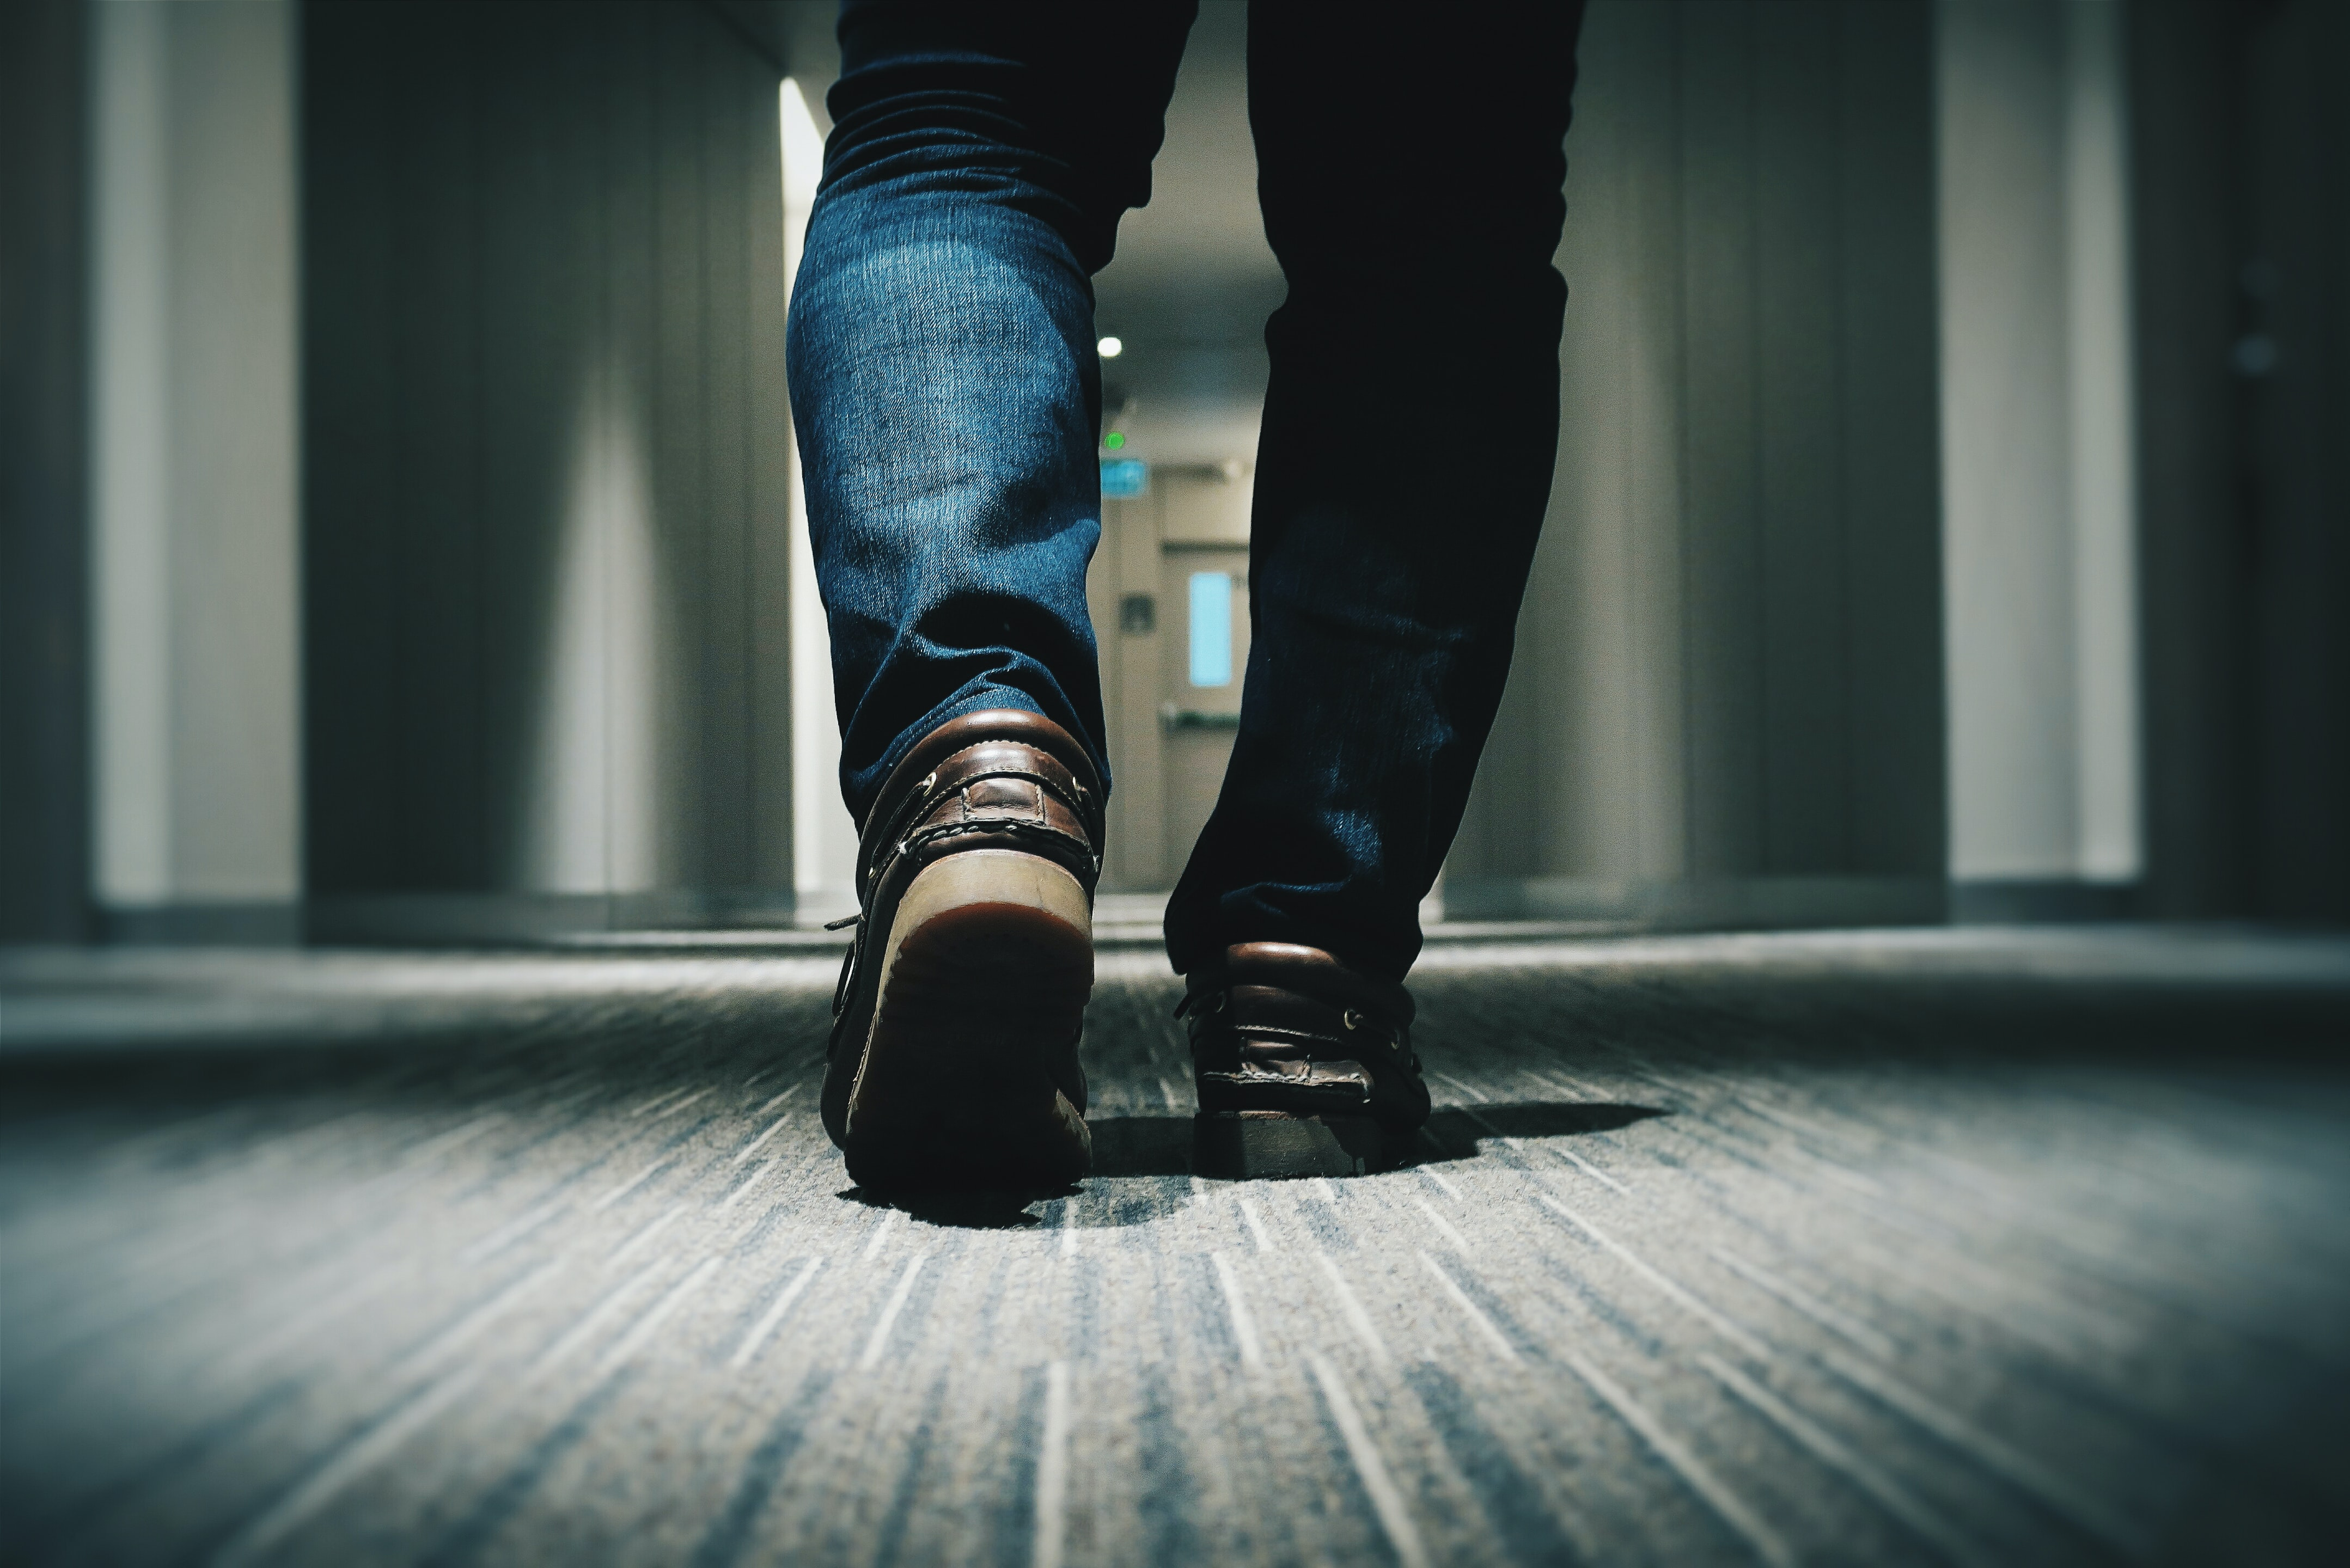 A low shot of a person in jeans walking through a hotel corridor